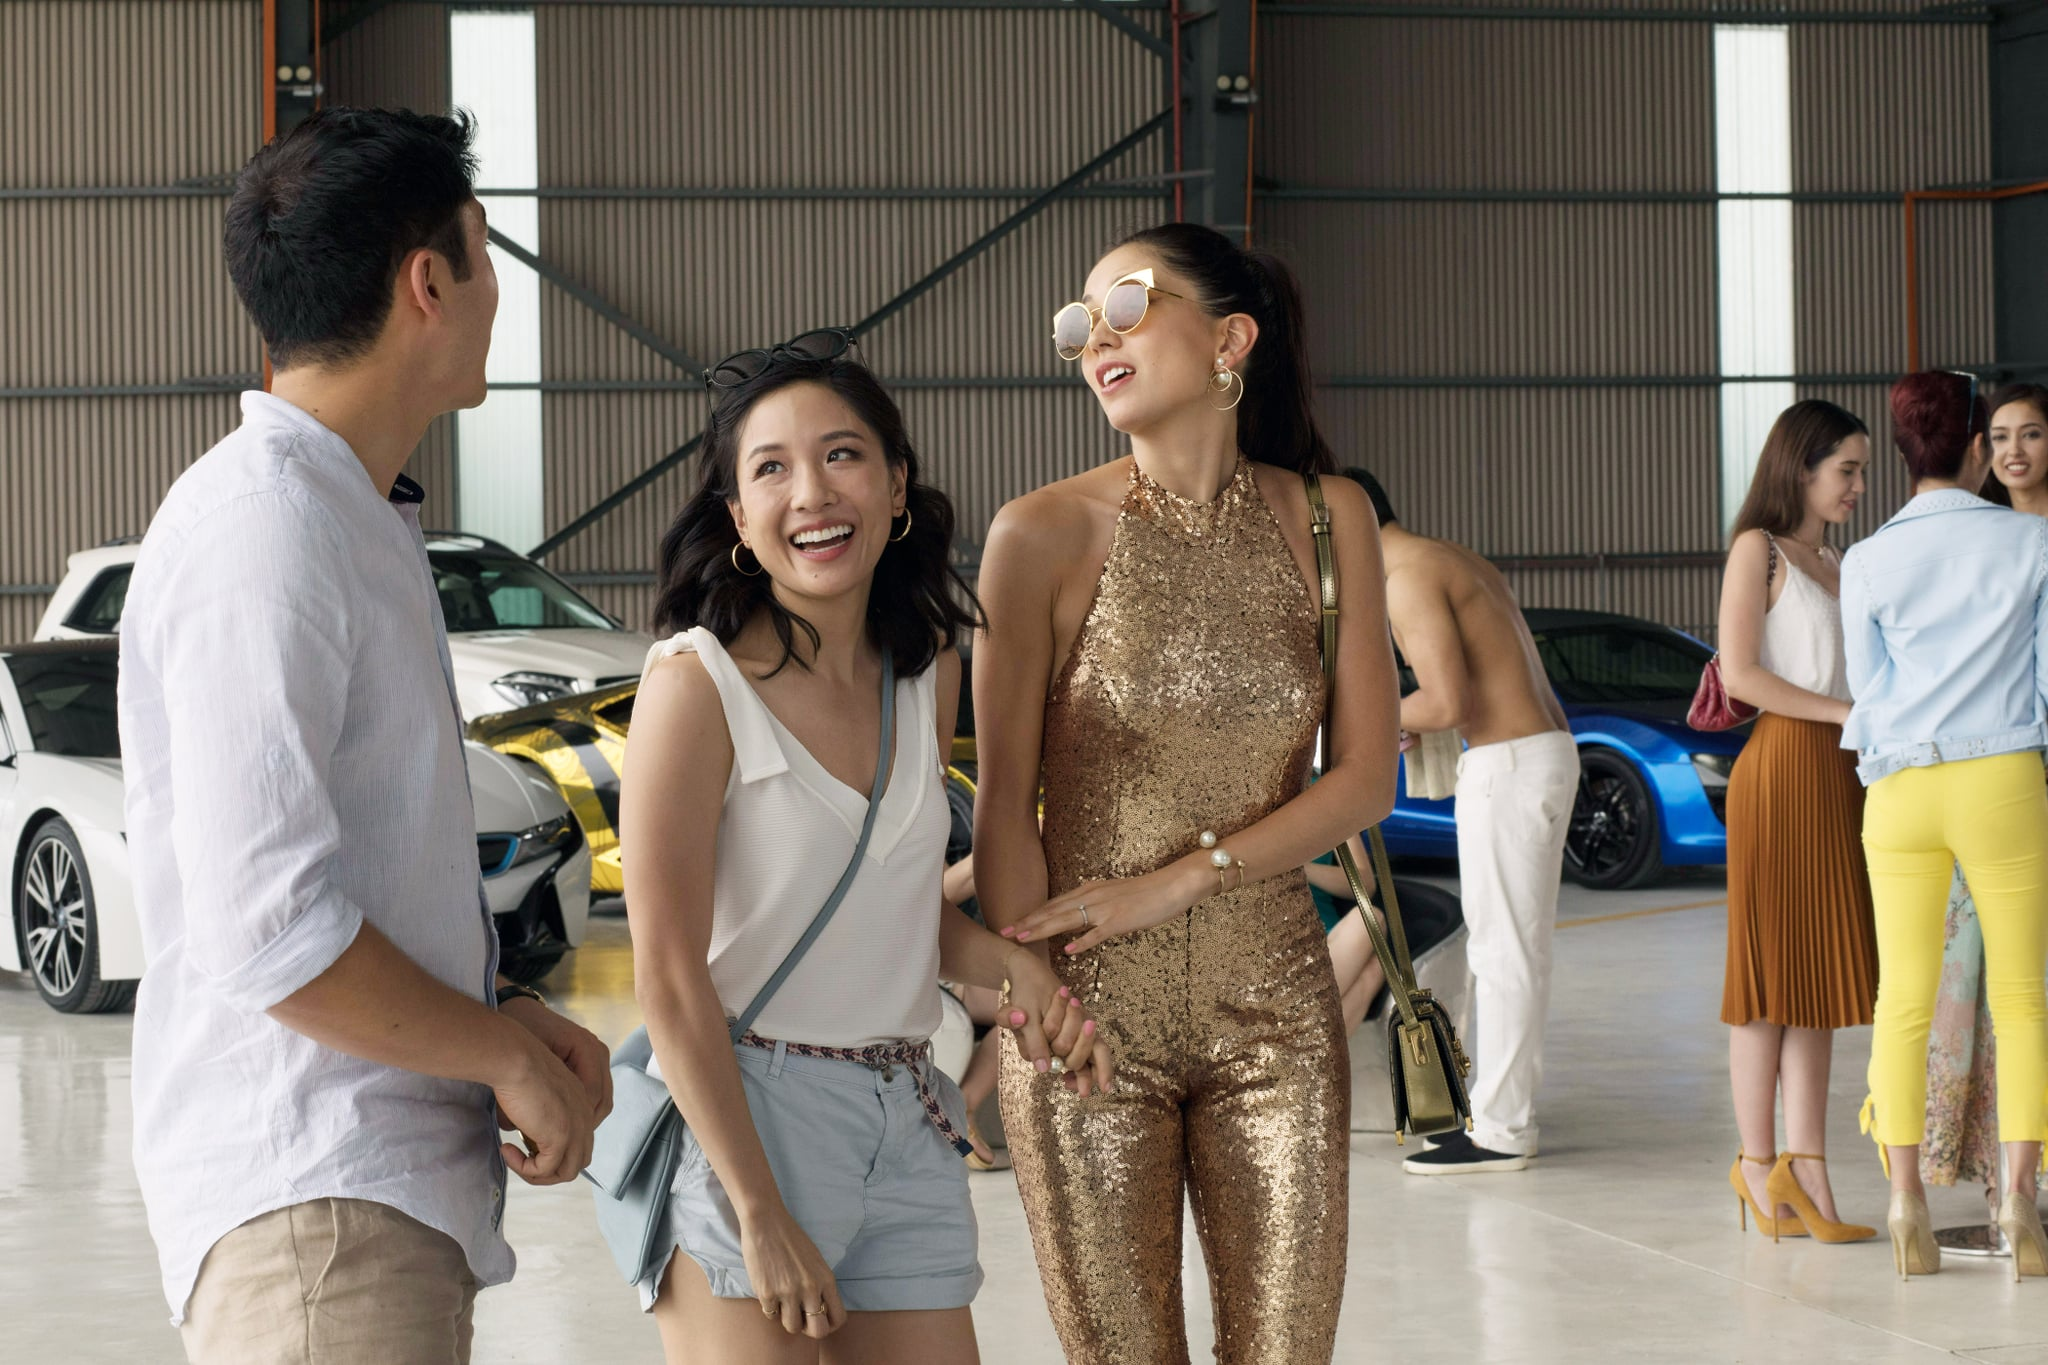 CRAZY RICH ASIANS, l-r: Henry Golding, Constance Wu, Sonoya Mizuno, 2018. ph: Sanja Bucko/ Warner Bros. Pictures/courtesy Everett Collection